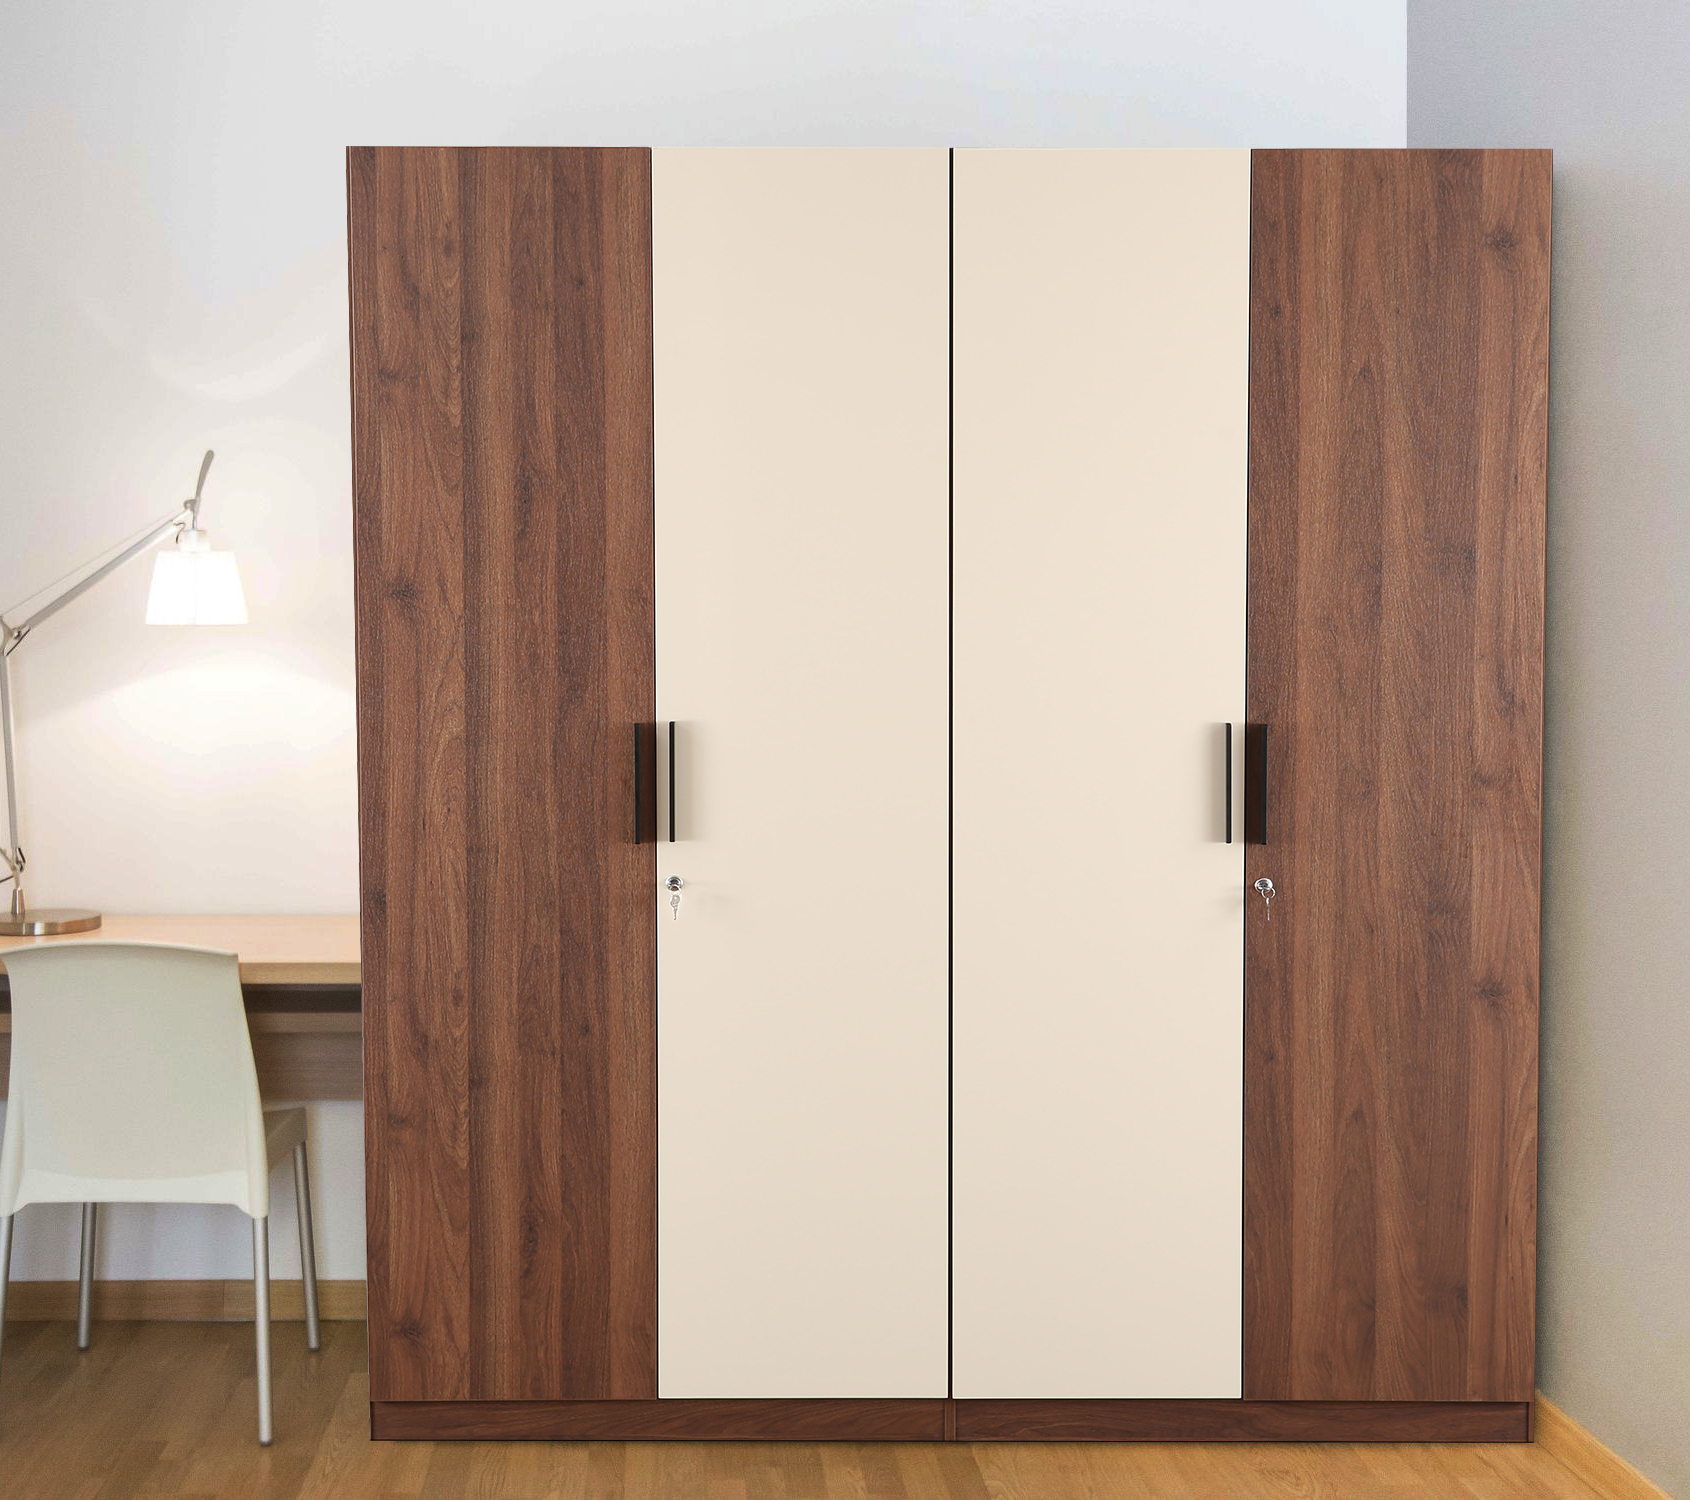 Ambrosia Engineered Wood Four Door Wardrobe in Wallnut & Off White Colour by HomeTown